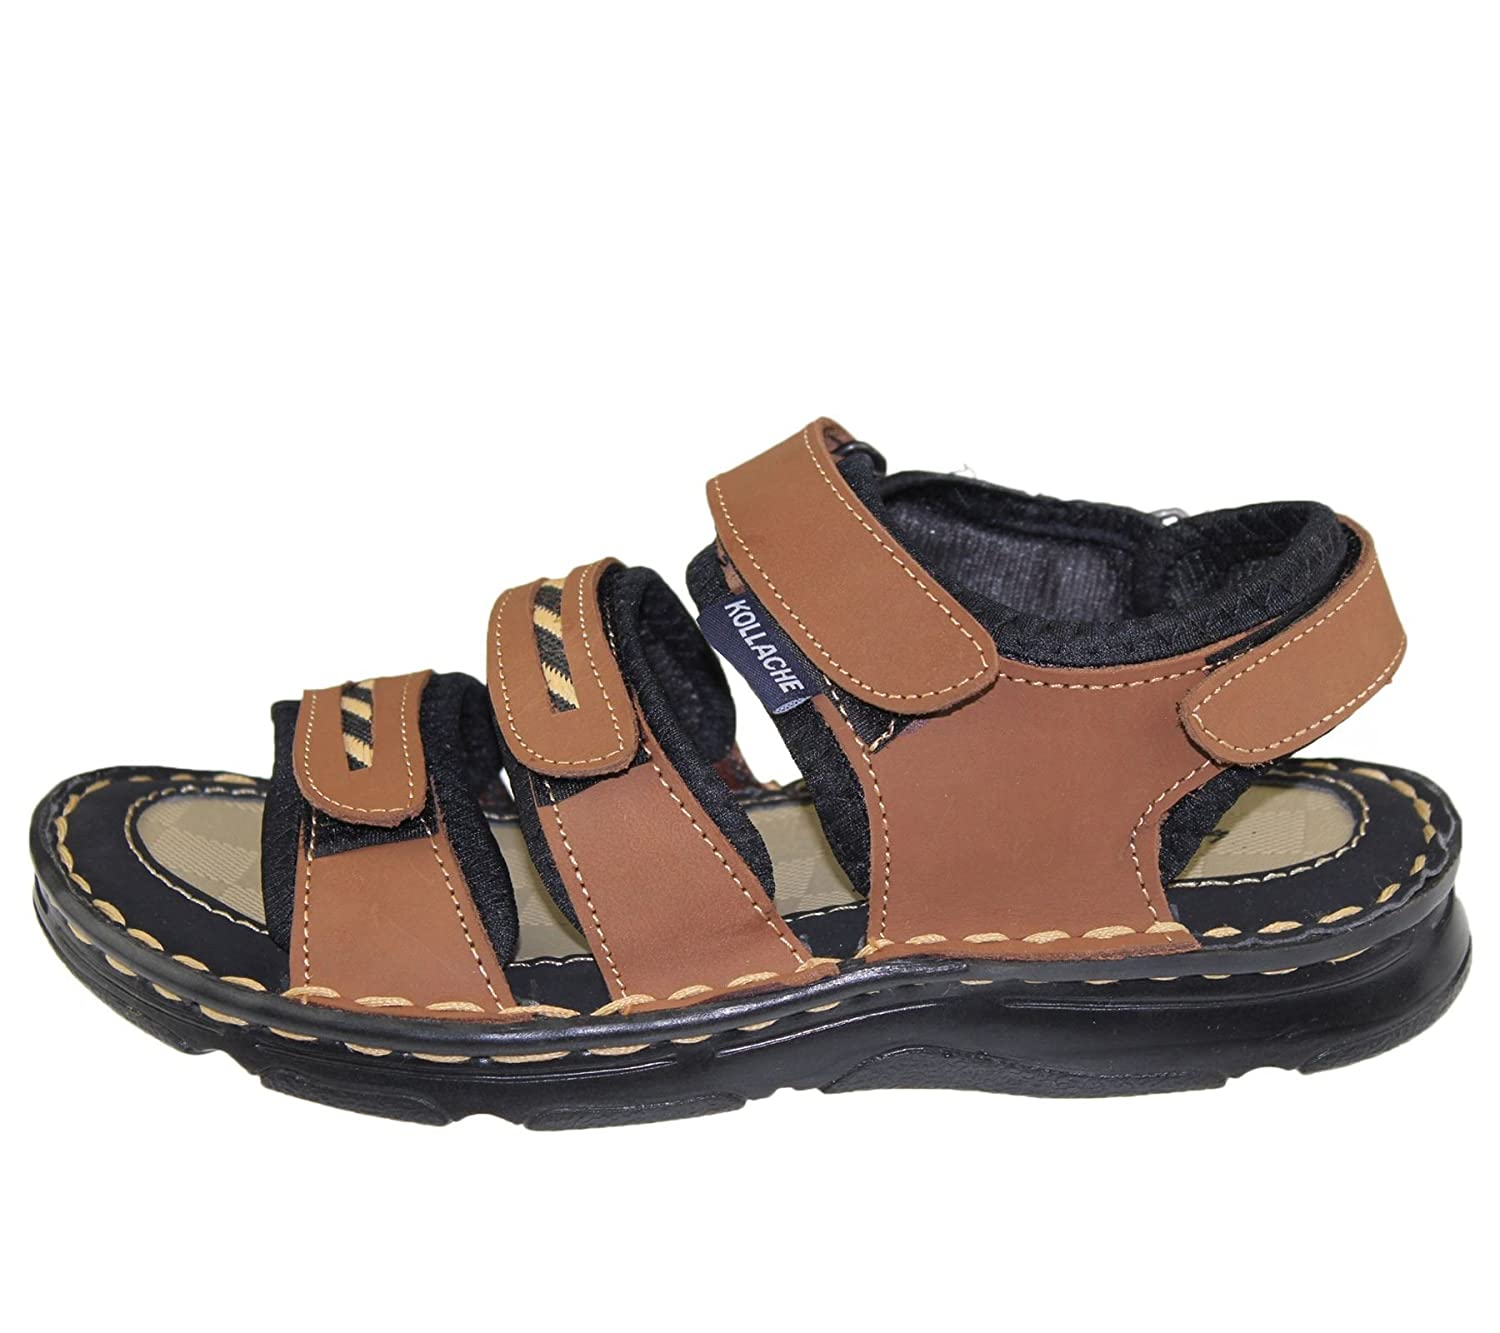 Boys Flat Sports Sandal Velcro Beach Buckle Walking Fashion Summer Casual  Slipper: Amazon.co.uk: Shoes & Bags